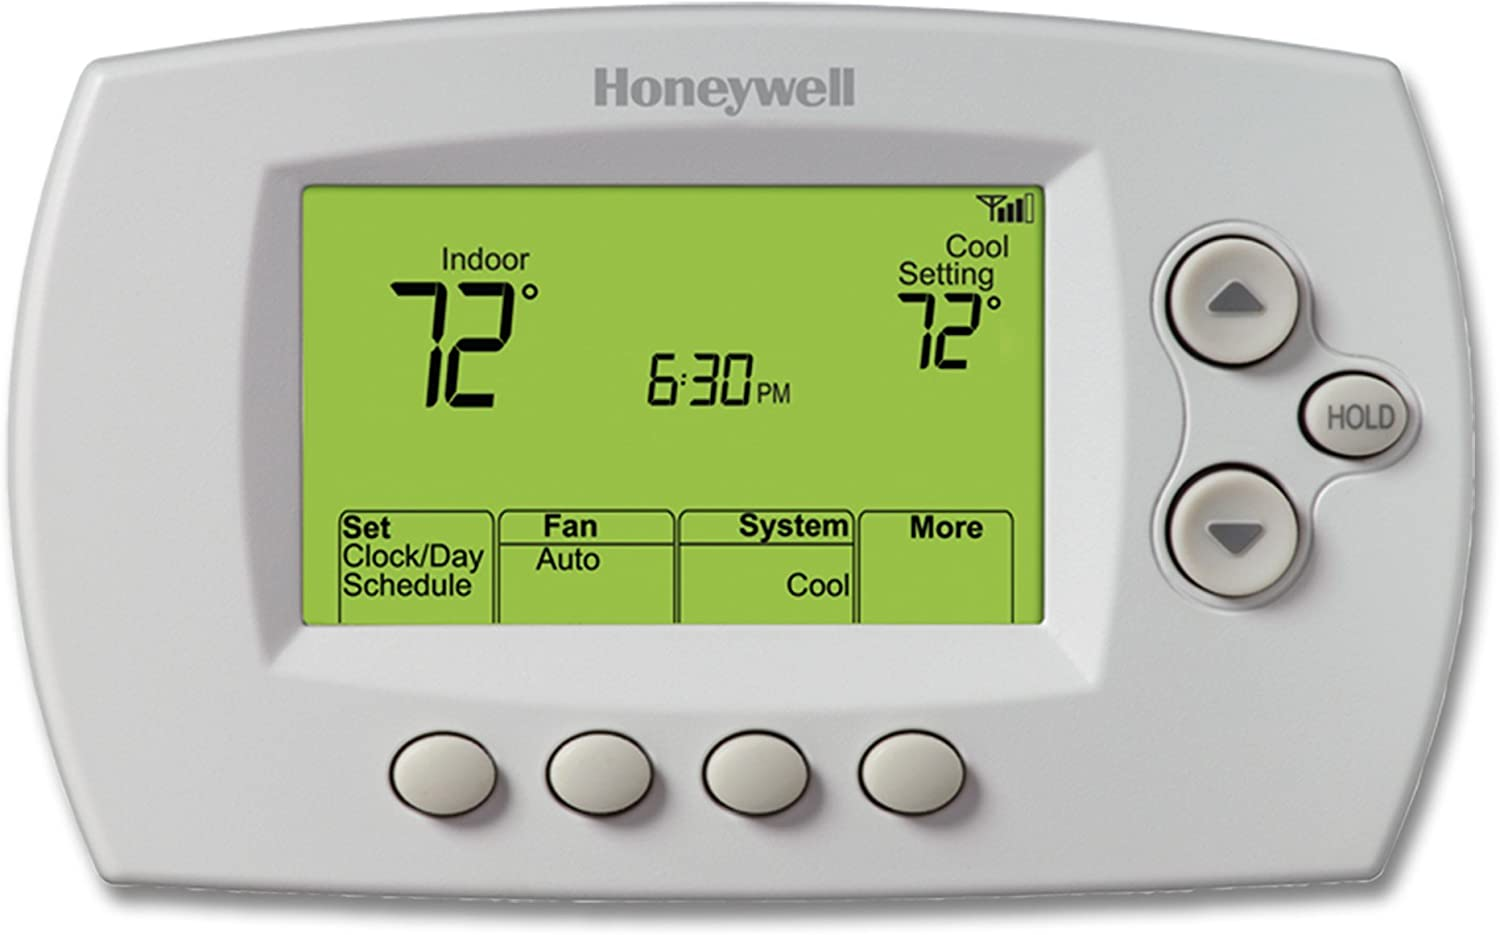 Honeywell RET40E40D10040/U Wi Fi Programmable Thermostat by Honeywell